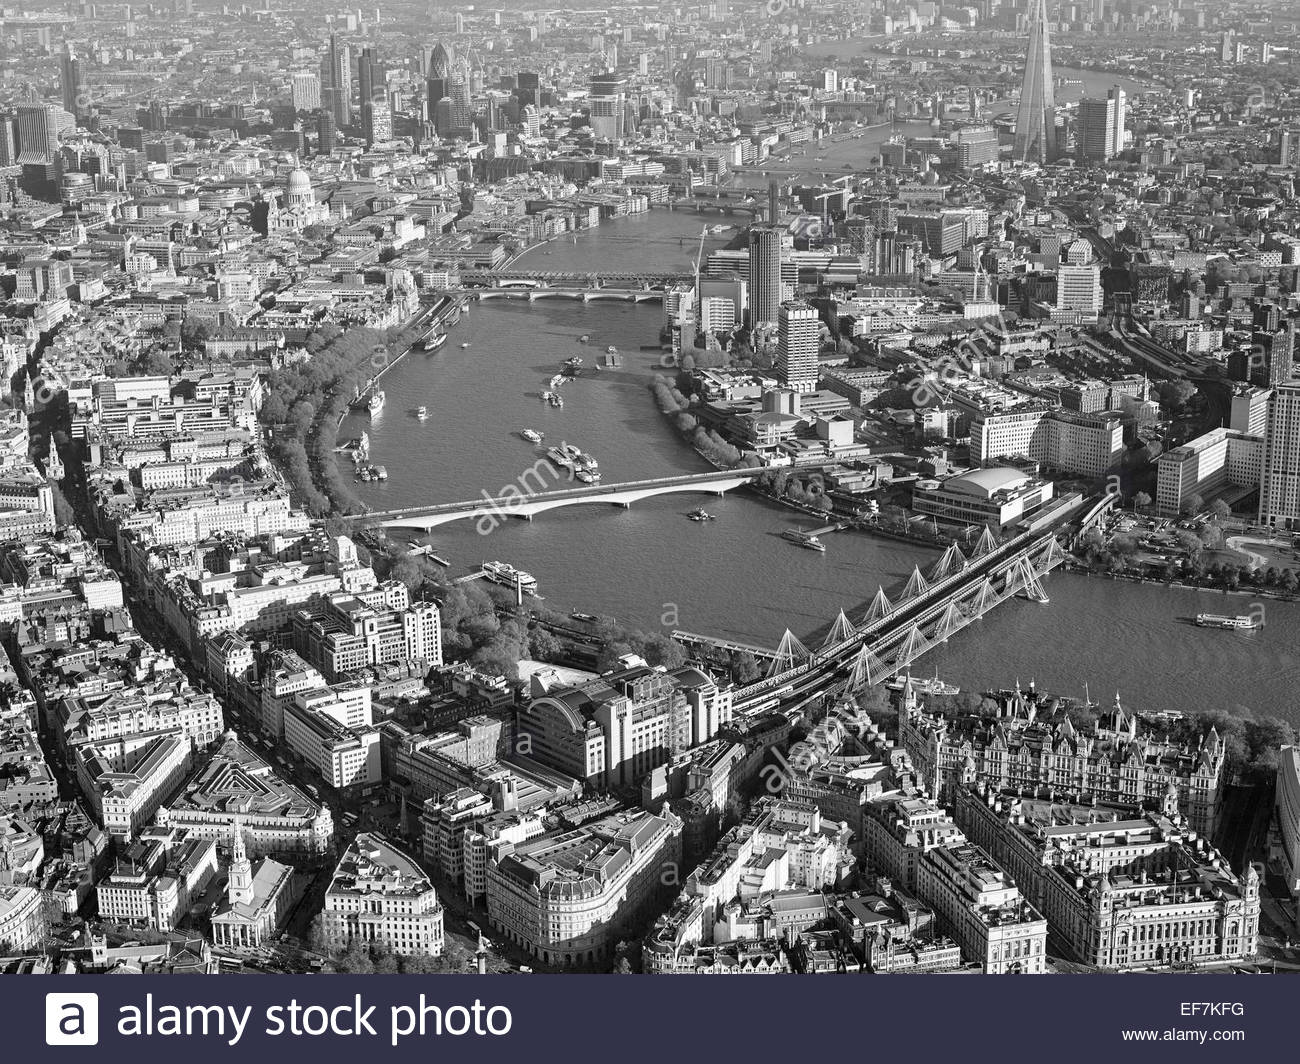 The River Thames from the air, Central London, UK looking East towards the City, Hungerford Bridge right - Stock Image